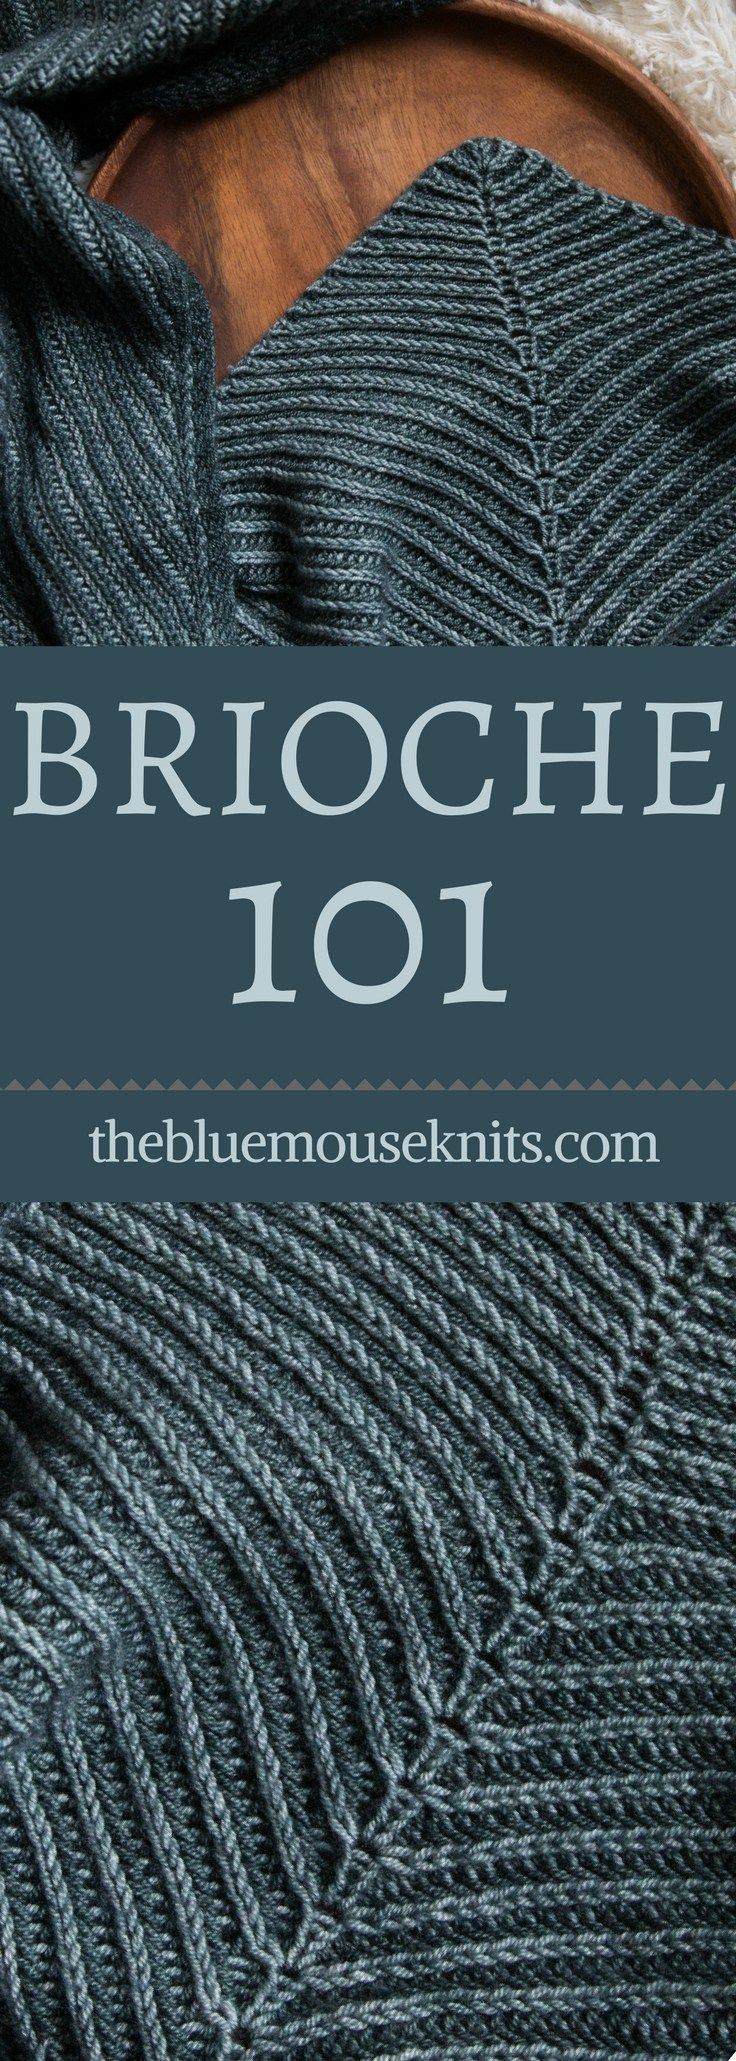 Have you ever wanted to learn brioche knitting? The Brioche 101 free video tutorial series is perfect for anyone wanting to learnt to knit in two color brioche. Learn the basics here, how to do a 2 color italian cast on, how to work setup rows and knit in brioche knitting, how to work setup rows and brioche knit from a one 1 color cast on. All this and more is free.